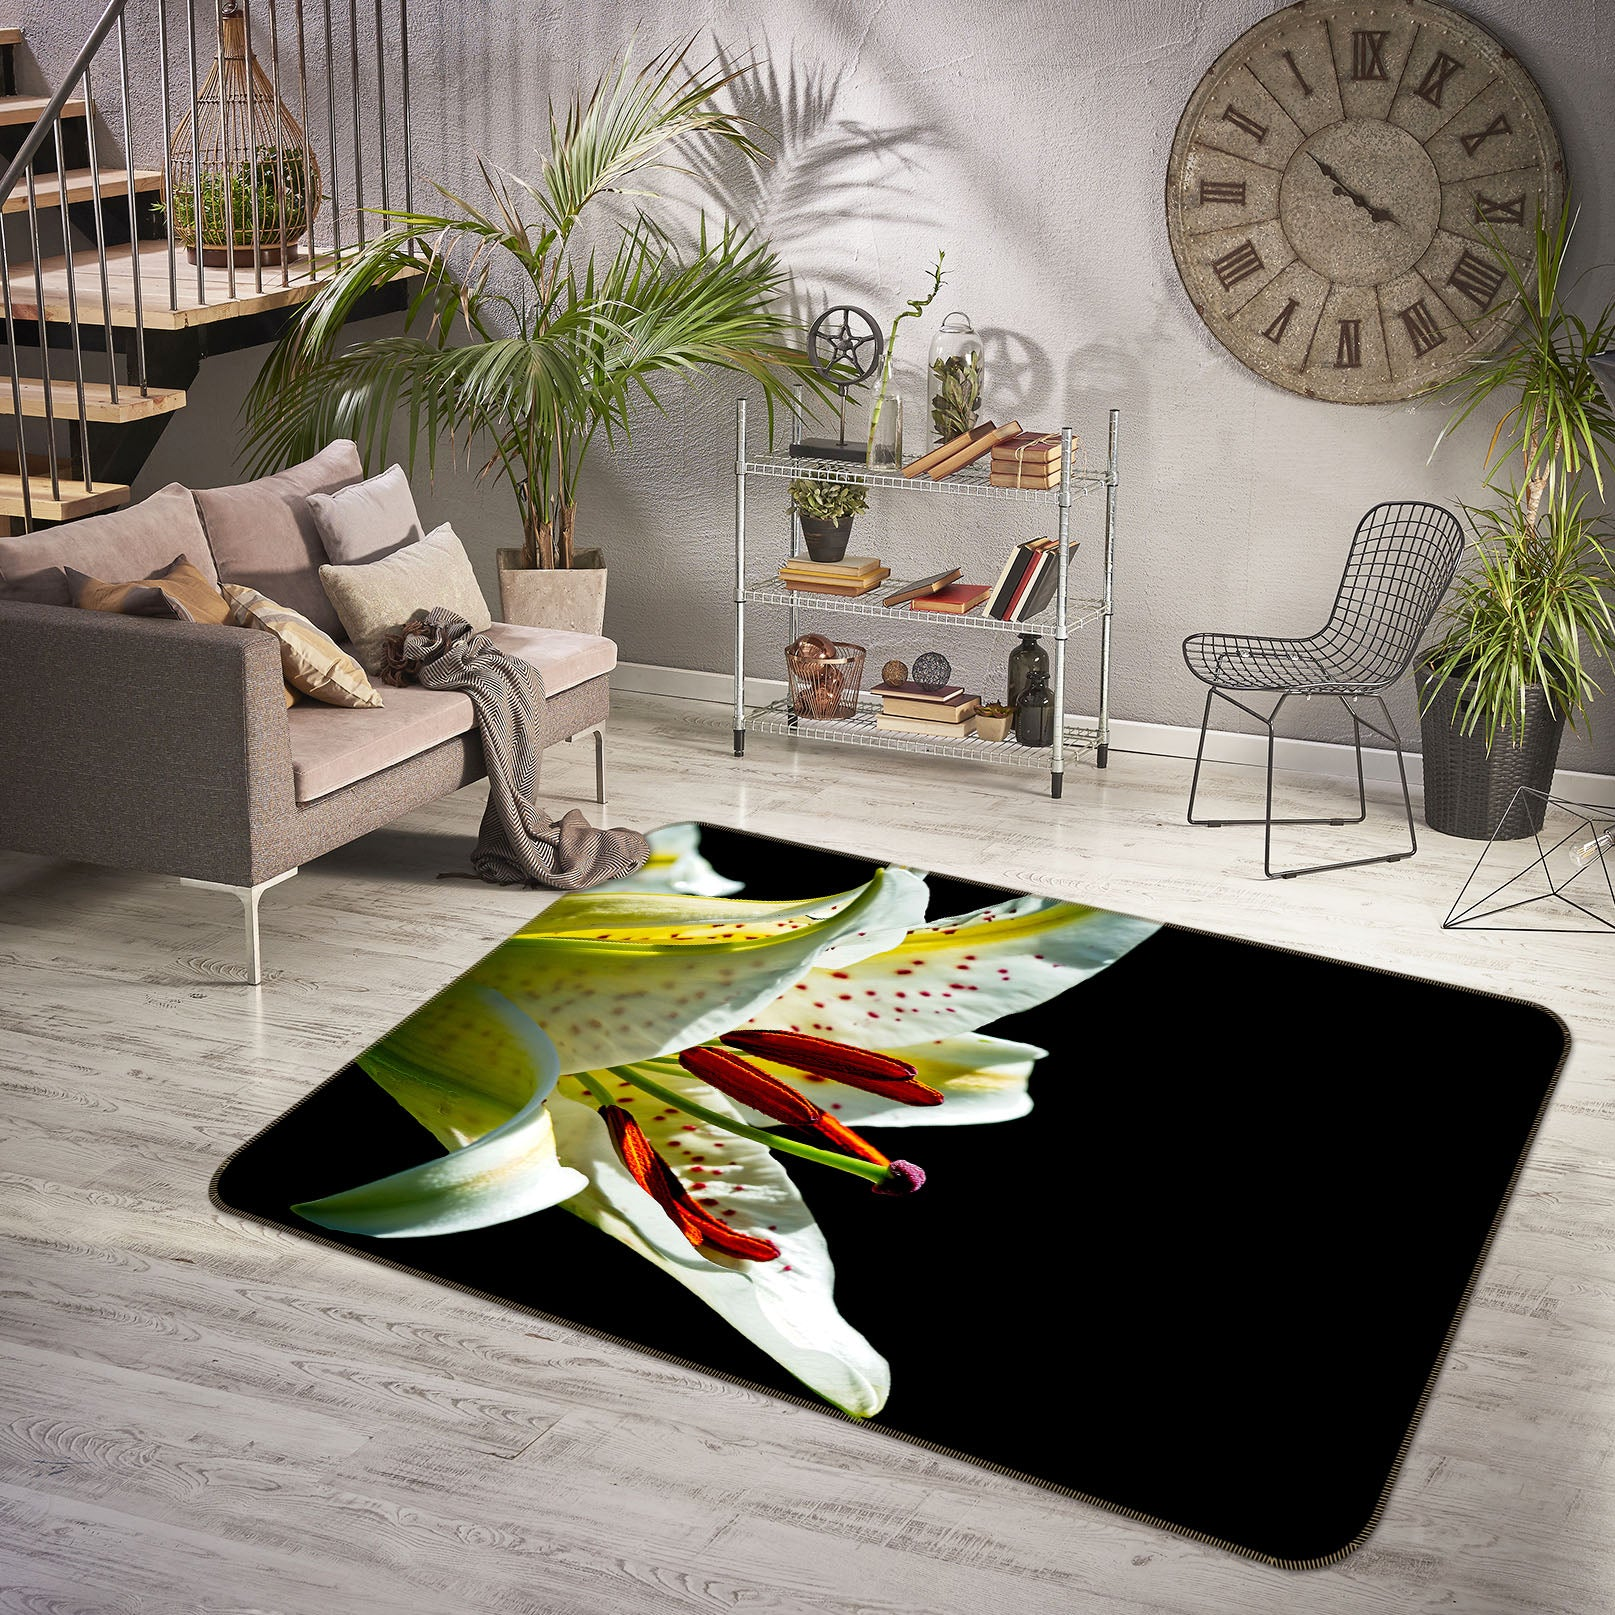 3D Lily Blossoms 1130 Kathy Barefield Rug Non Slip Rug Mat